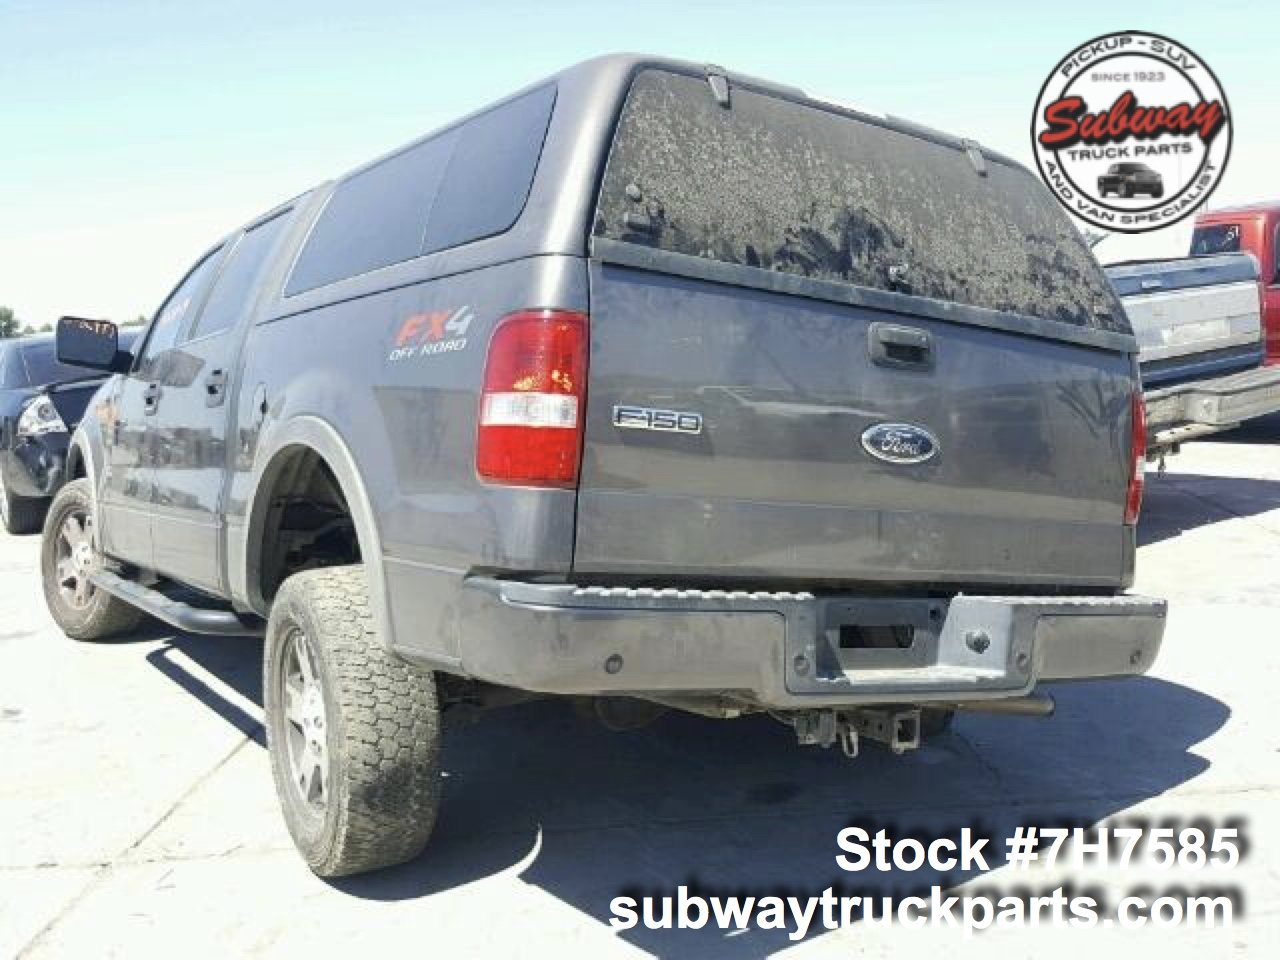 used parts 2004 ford f150 5 4l fx4 4x4 subway truck. Black Bedroom Furniture Sets. Home Design Ideas